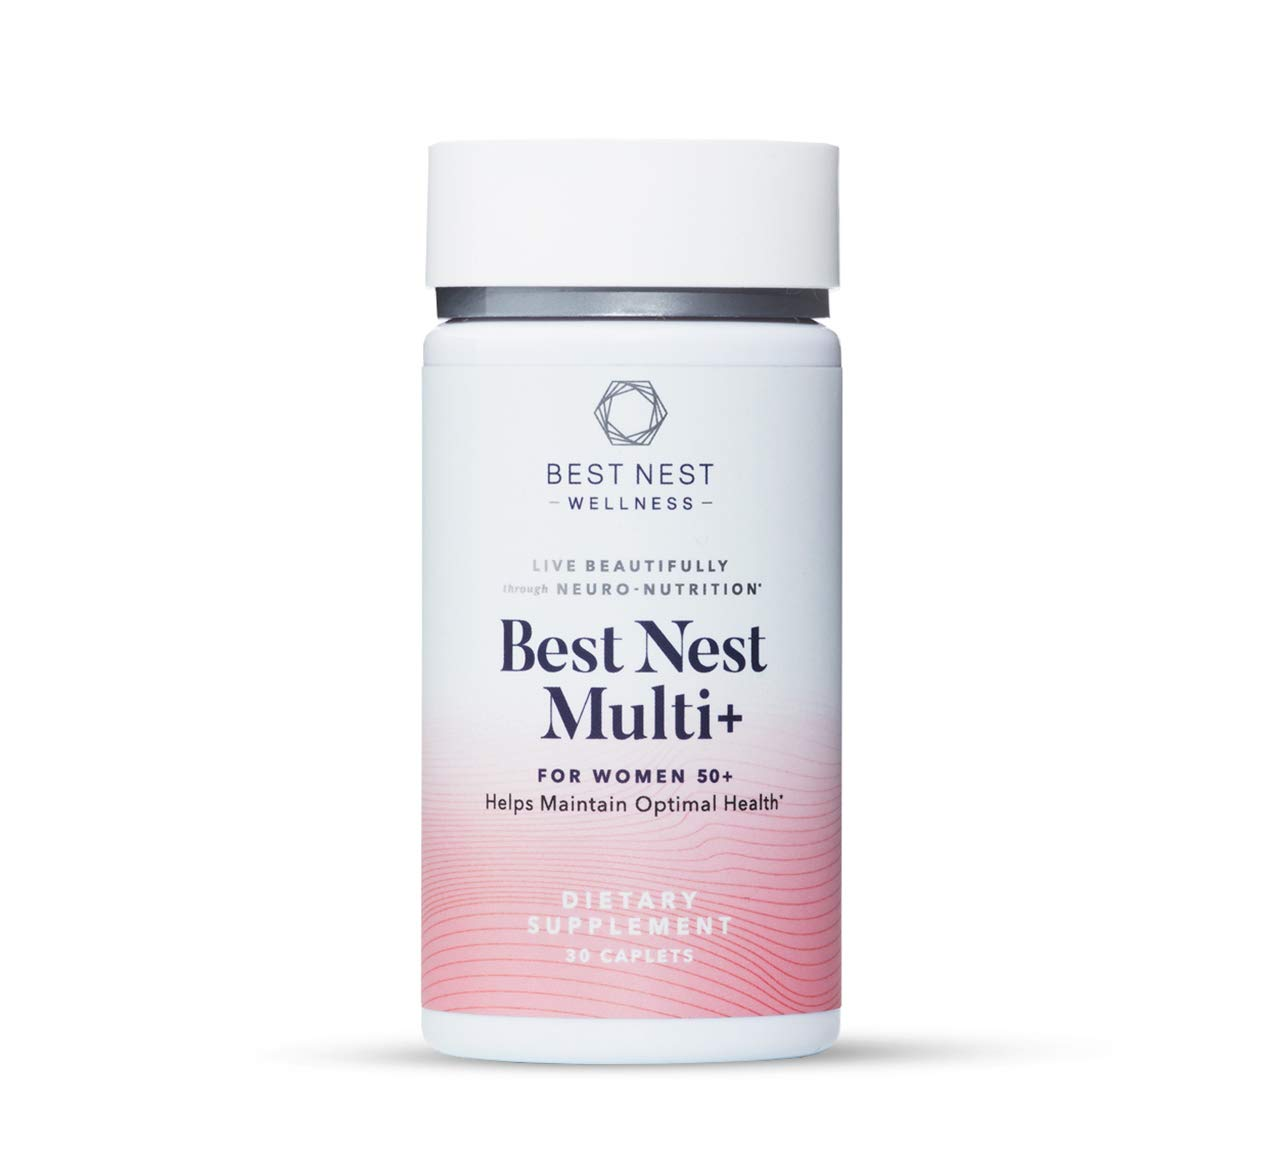 Best Nest Multi+ for Women Over 50, Methylfolate (Folic Acid), Natural Whole Food Organic Blend, Once Daily Vitamins, Immune Support, 30 Ct, Best Nest Wellness